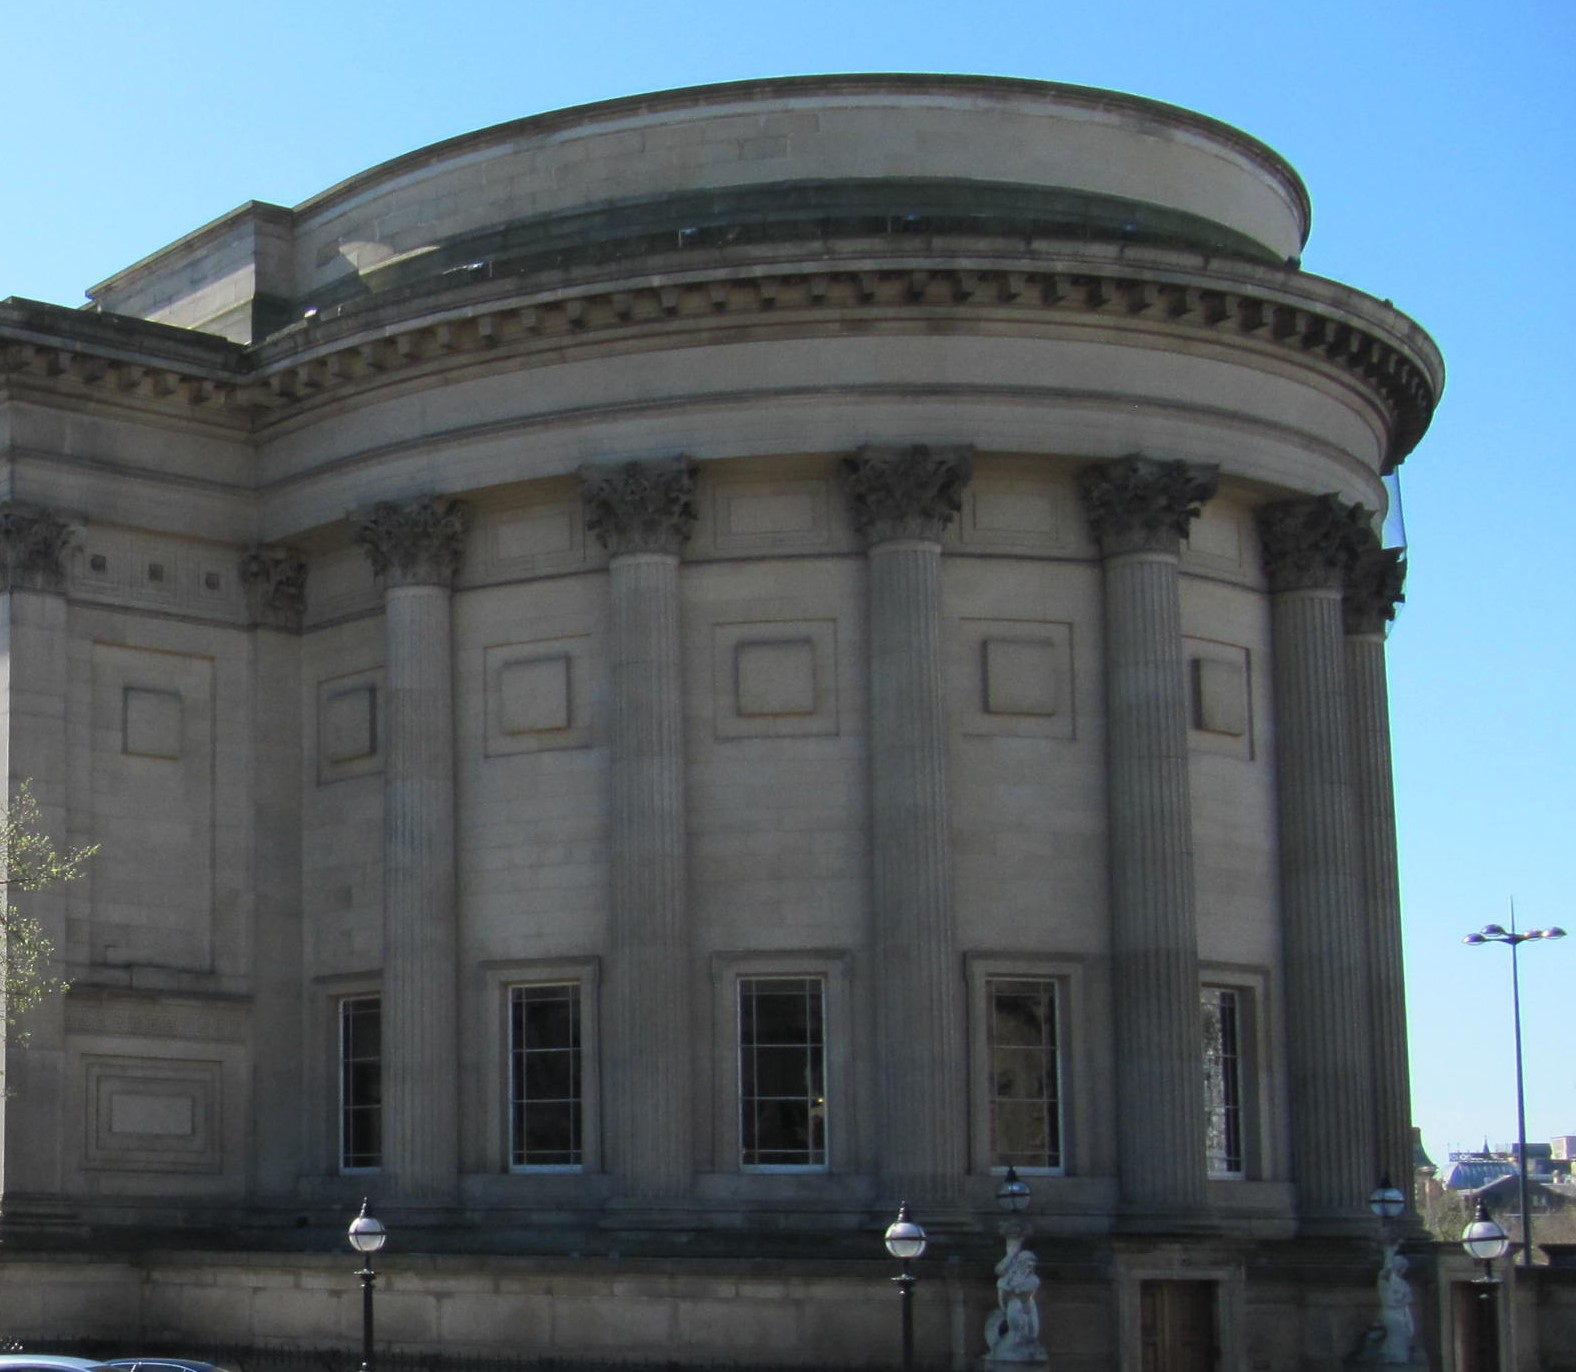 St Georges Hall